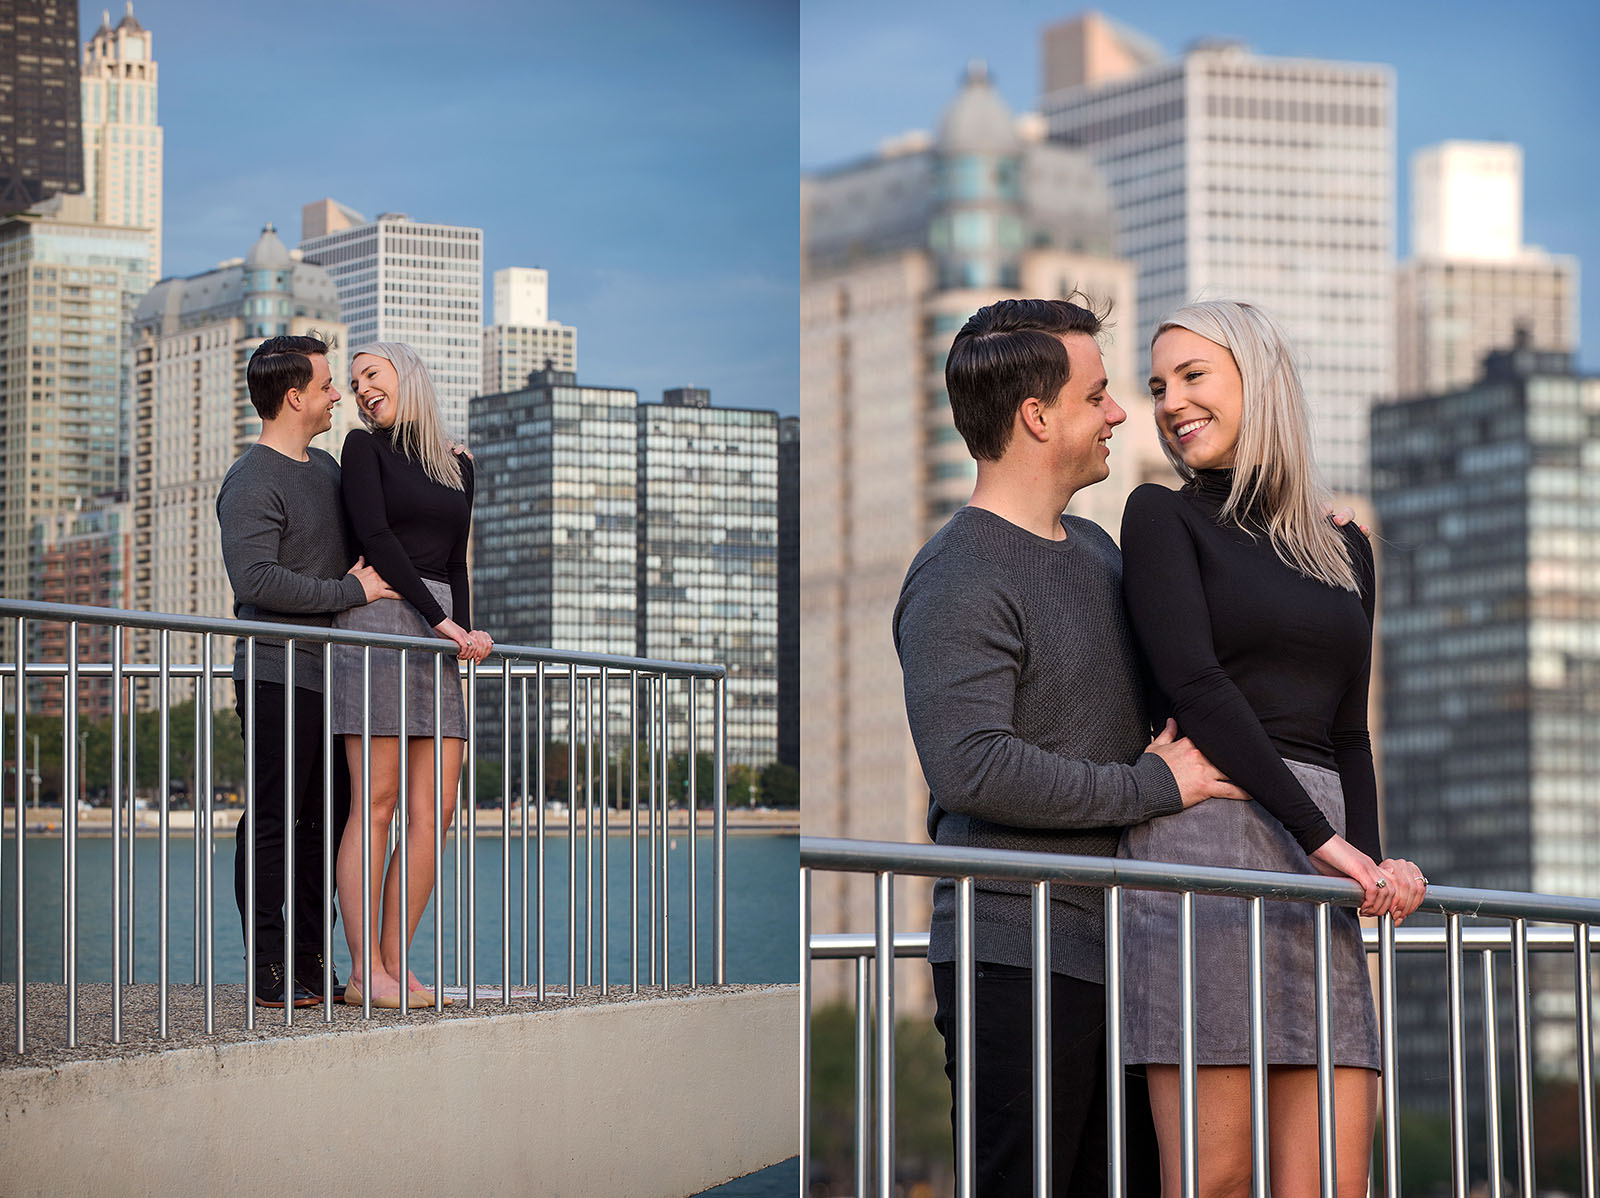 Spring Engagement Session photos at Milton Olive Park in Chicago